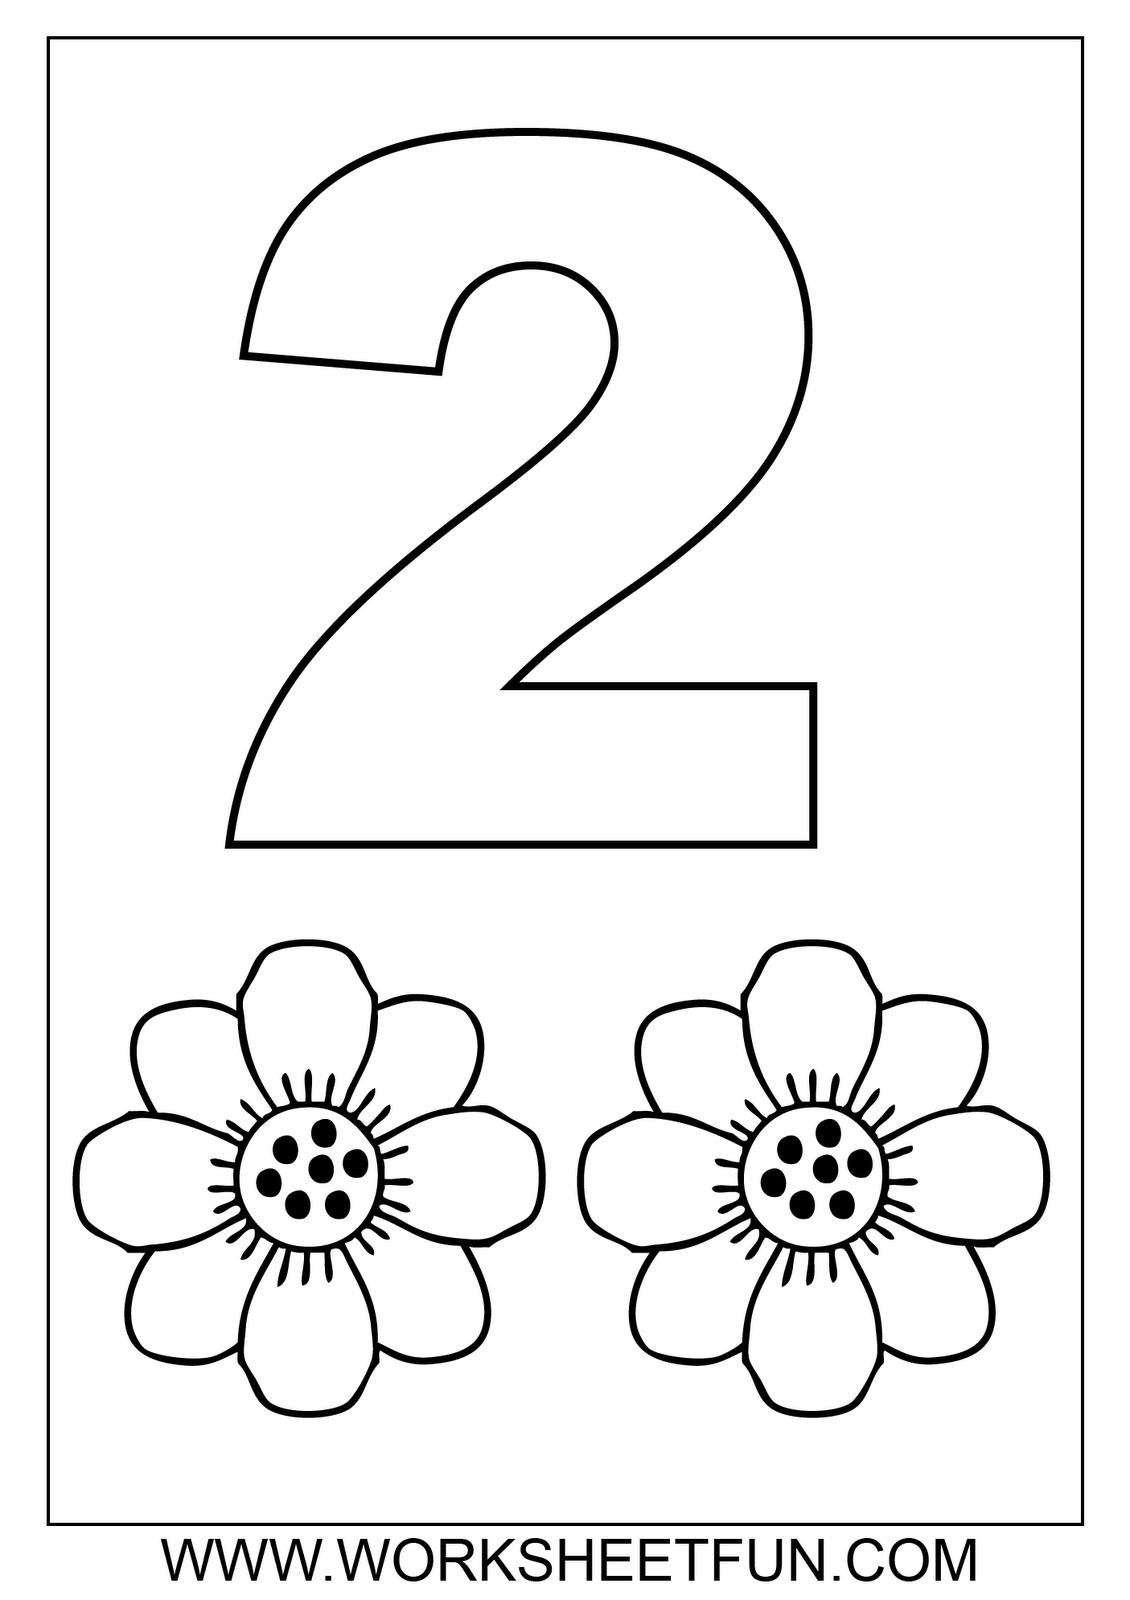 Preschool Number Coloring Pages – Pre K Number Worksheets